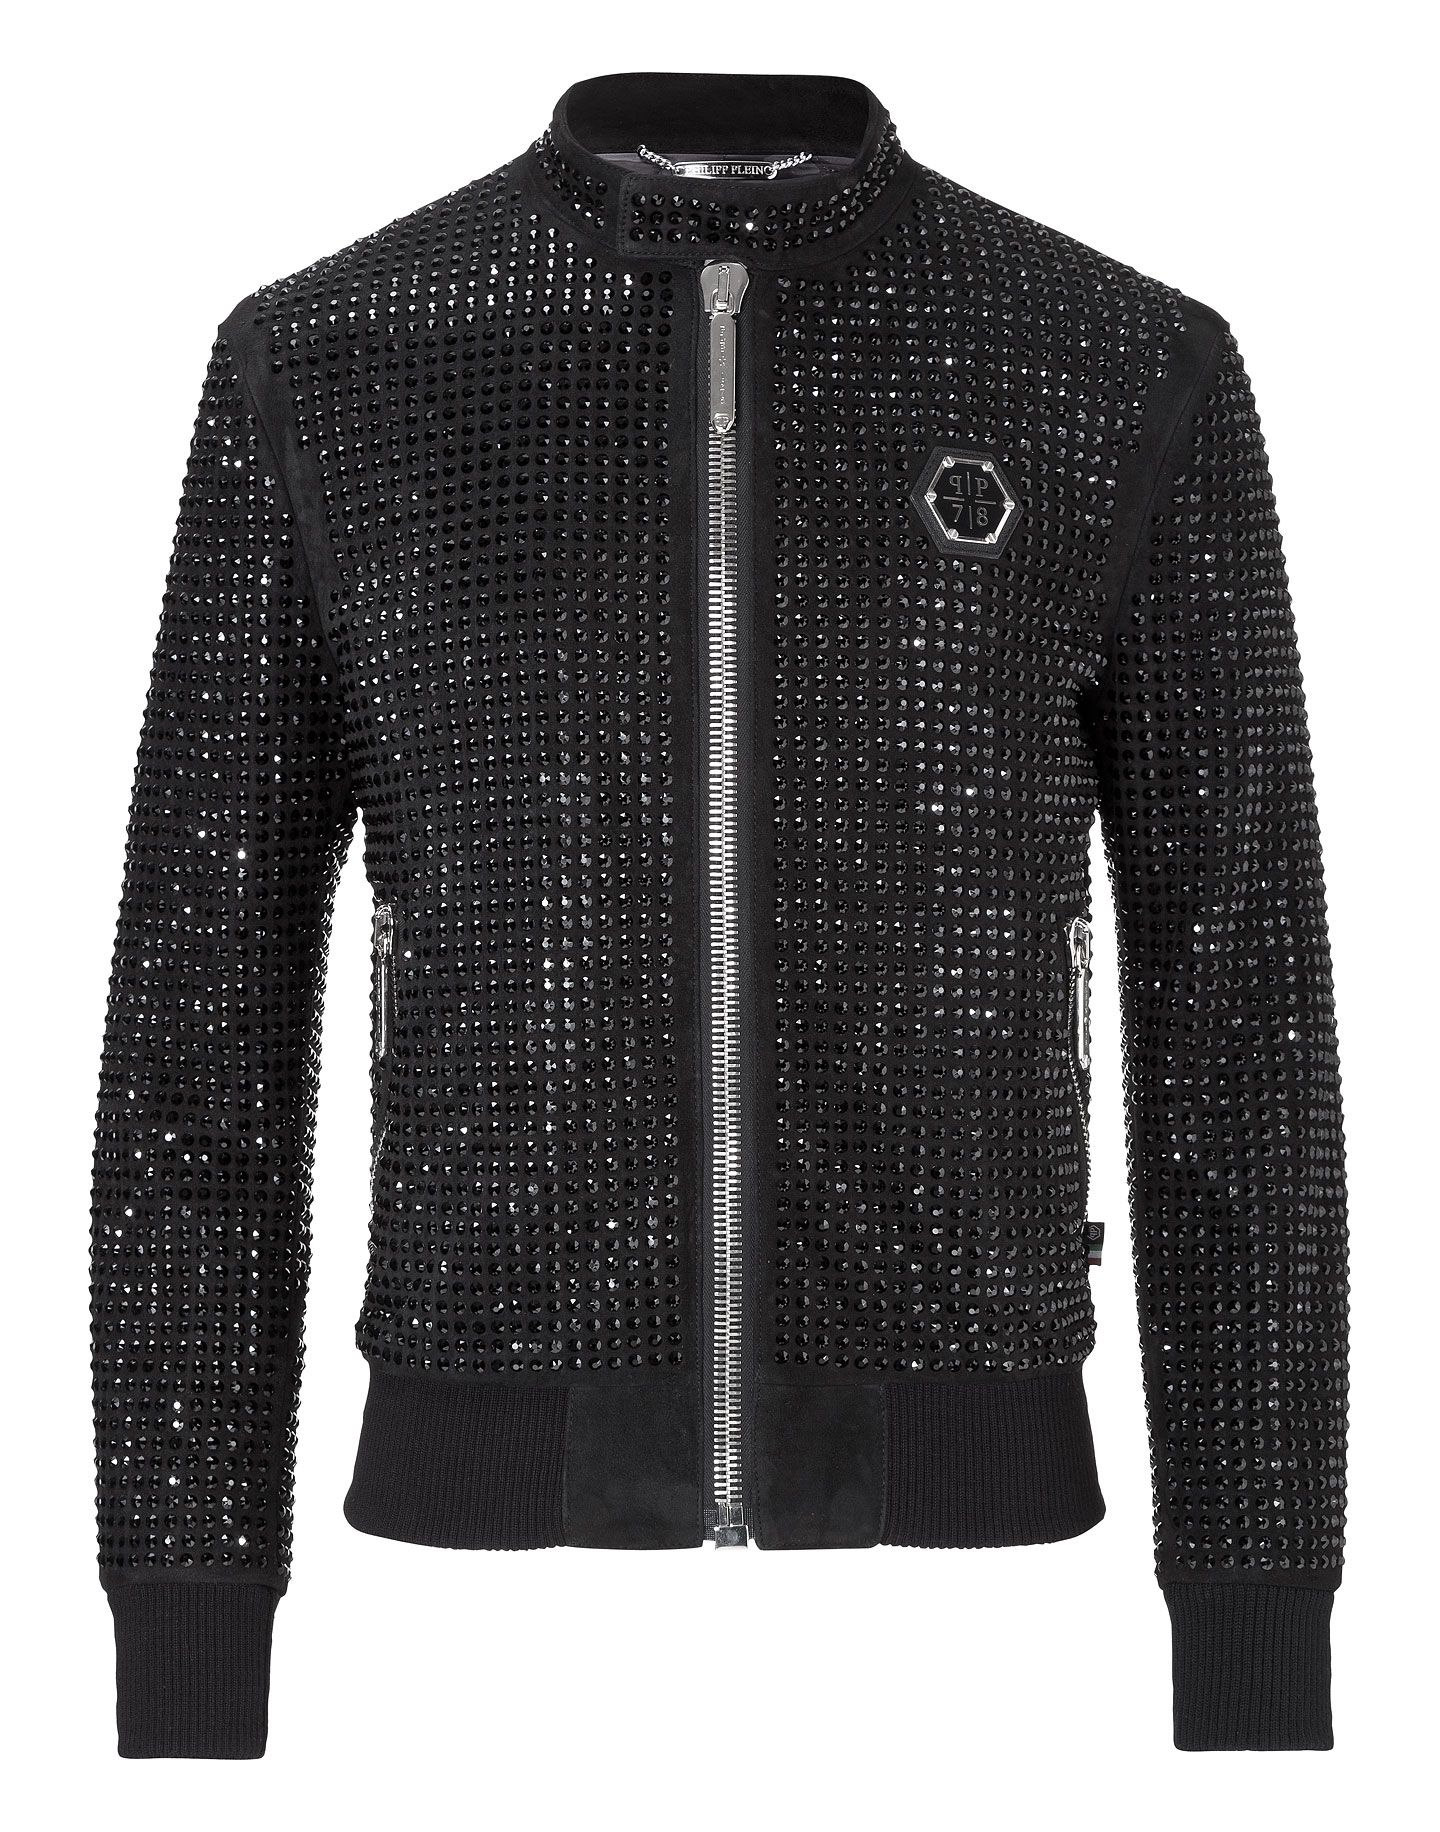 0a10be2587 PHILIPP PLEIN BIKER JACKET